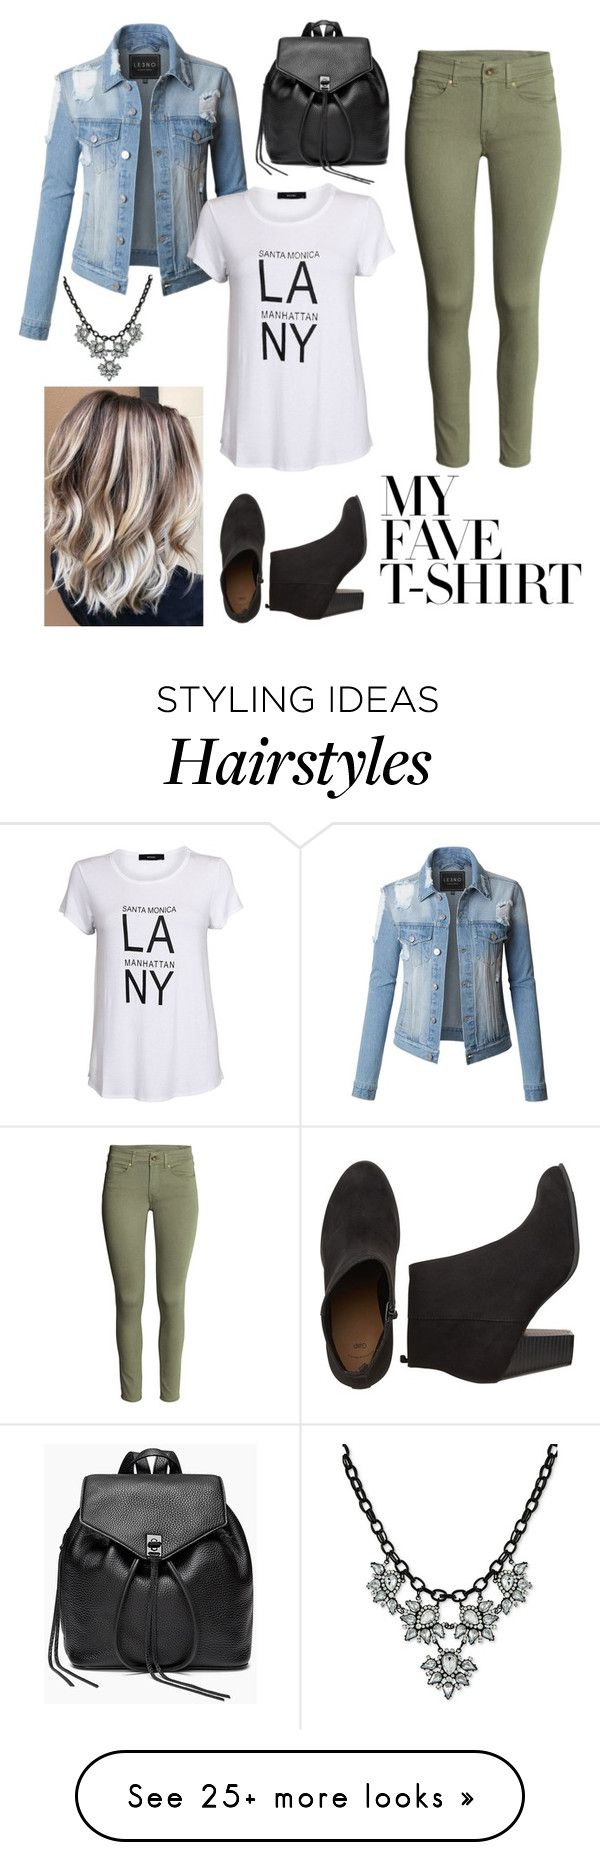 """""""Fave Tee: Contest"""" by kalye-hair on Polyvore featuring LE3NO, Rebecca Minkoff, Say Yes to the Prom and MyFaveTshirt"""